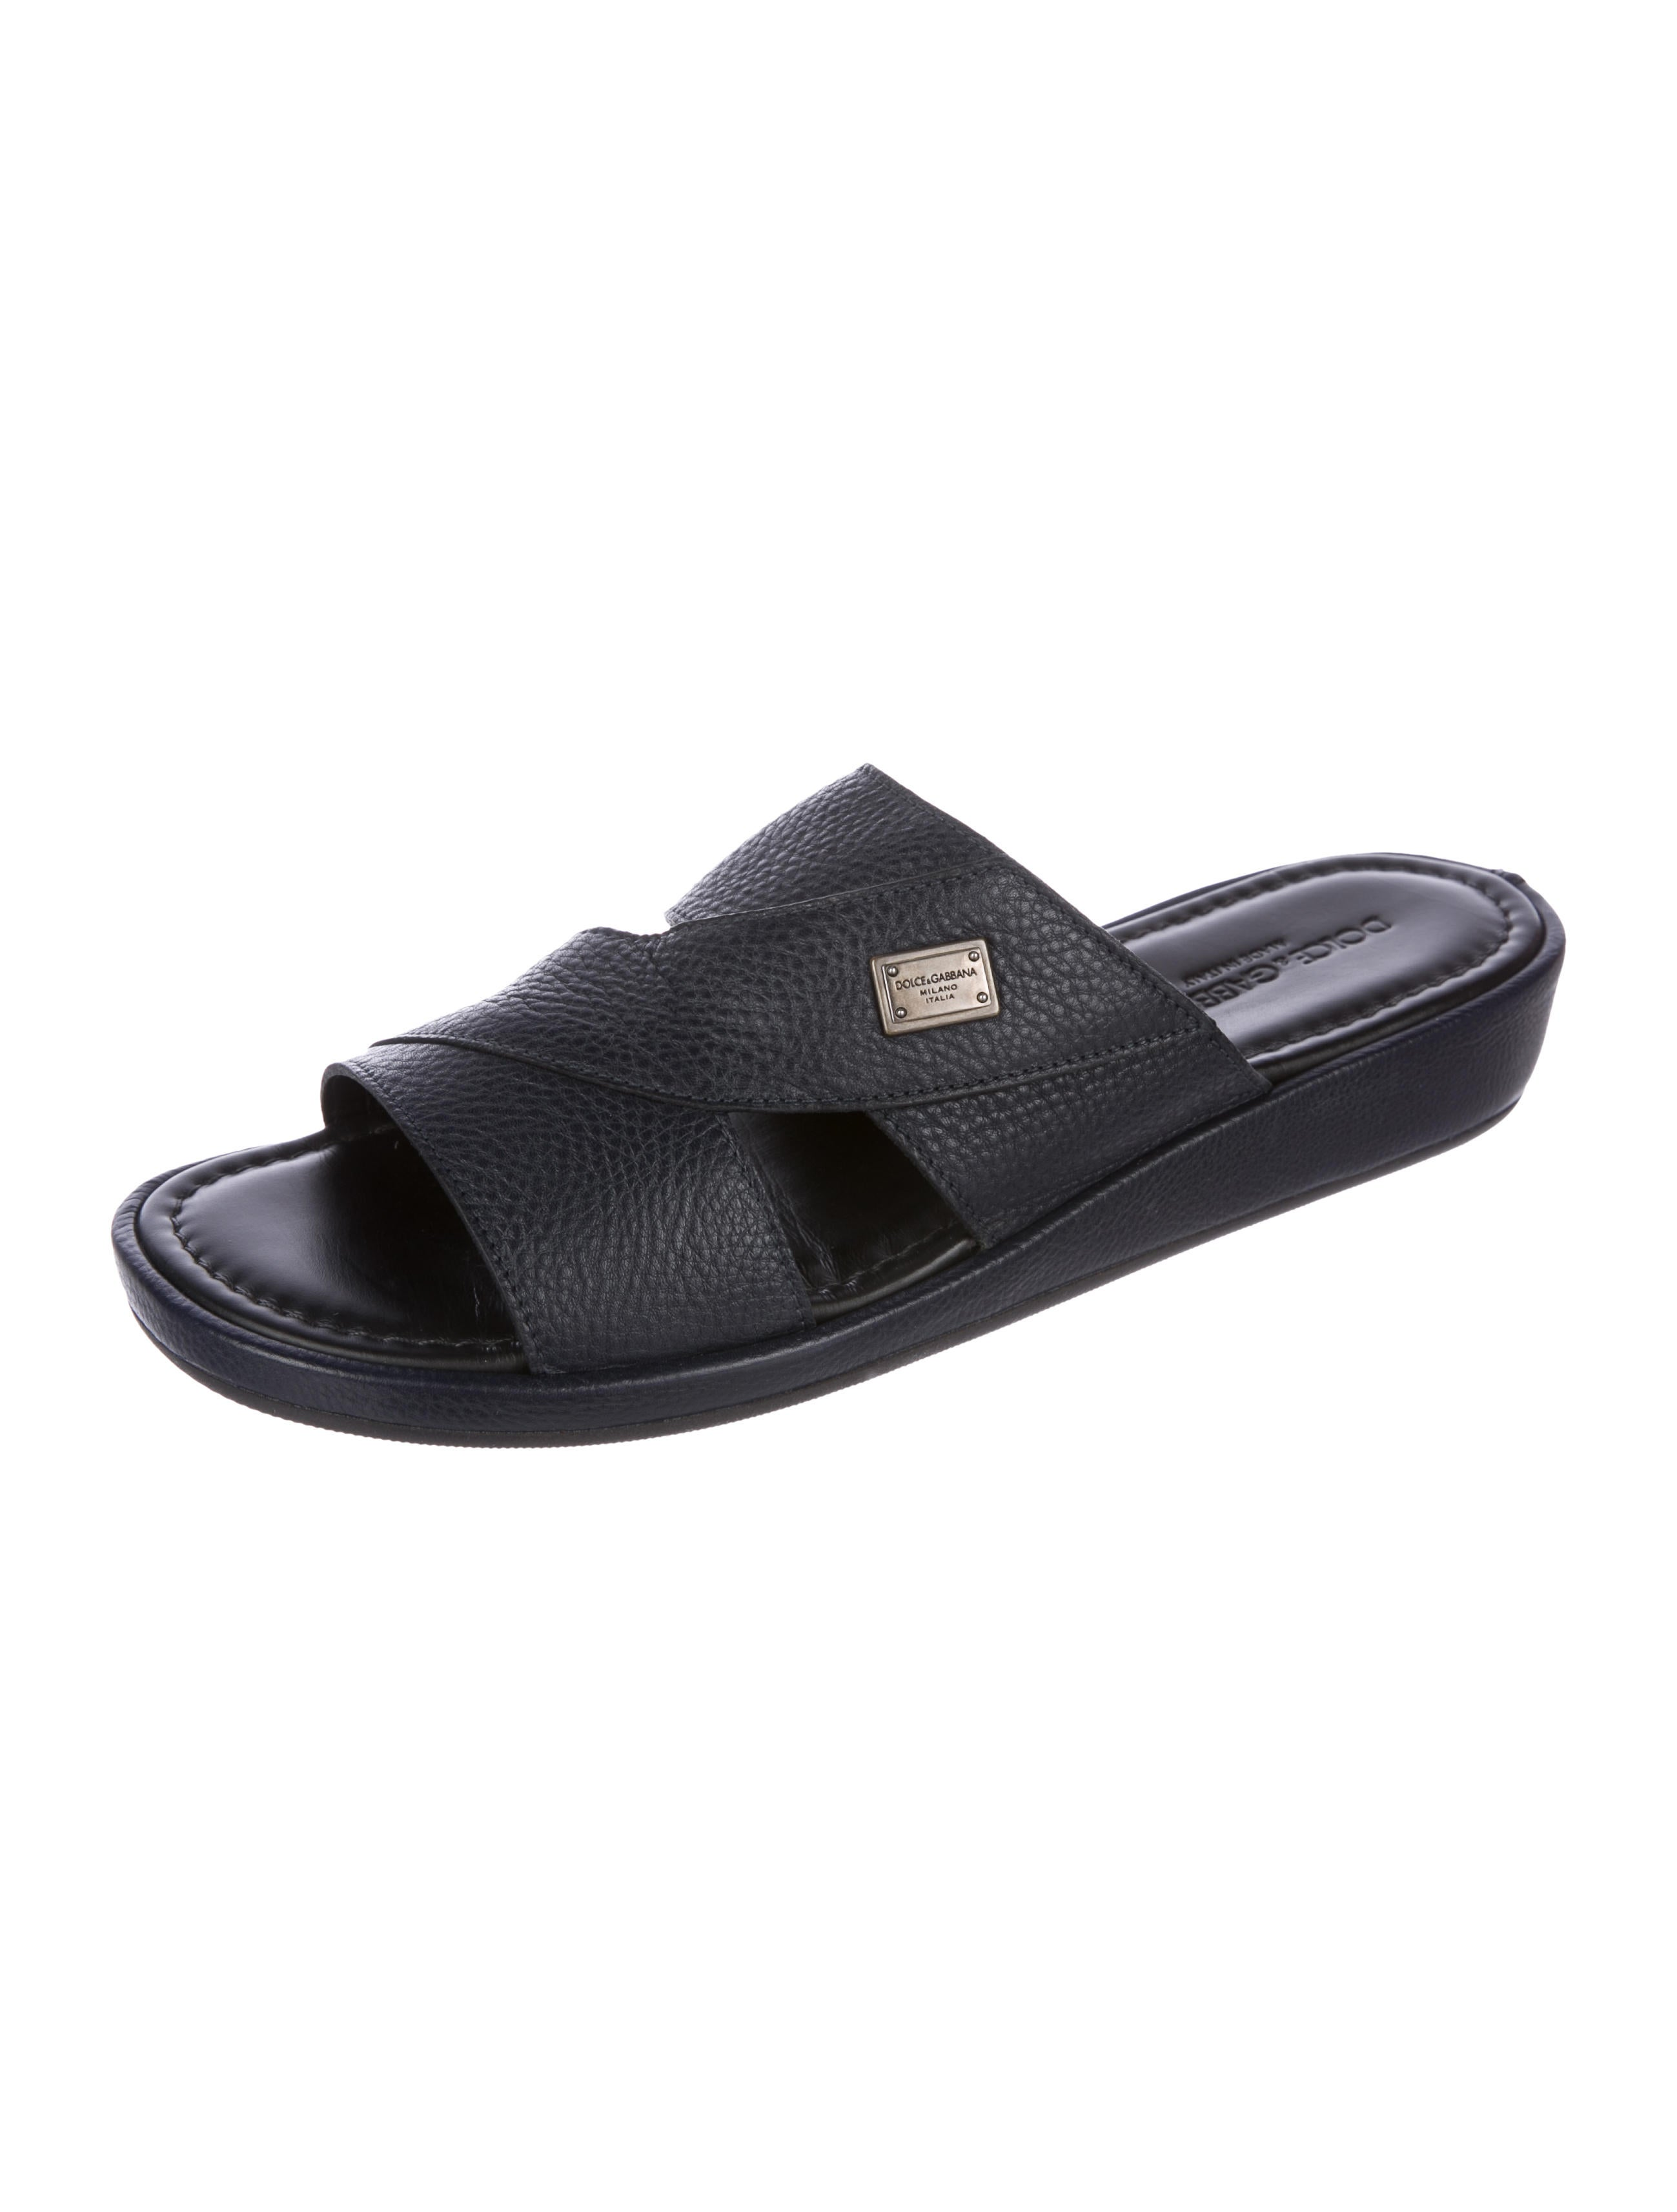 clearance eastbay Dolce & Gabbana Leather Slide Sandals w/ Tags high quality cheap price buy cheap comfortable cheap cost mRIACM